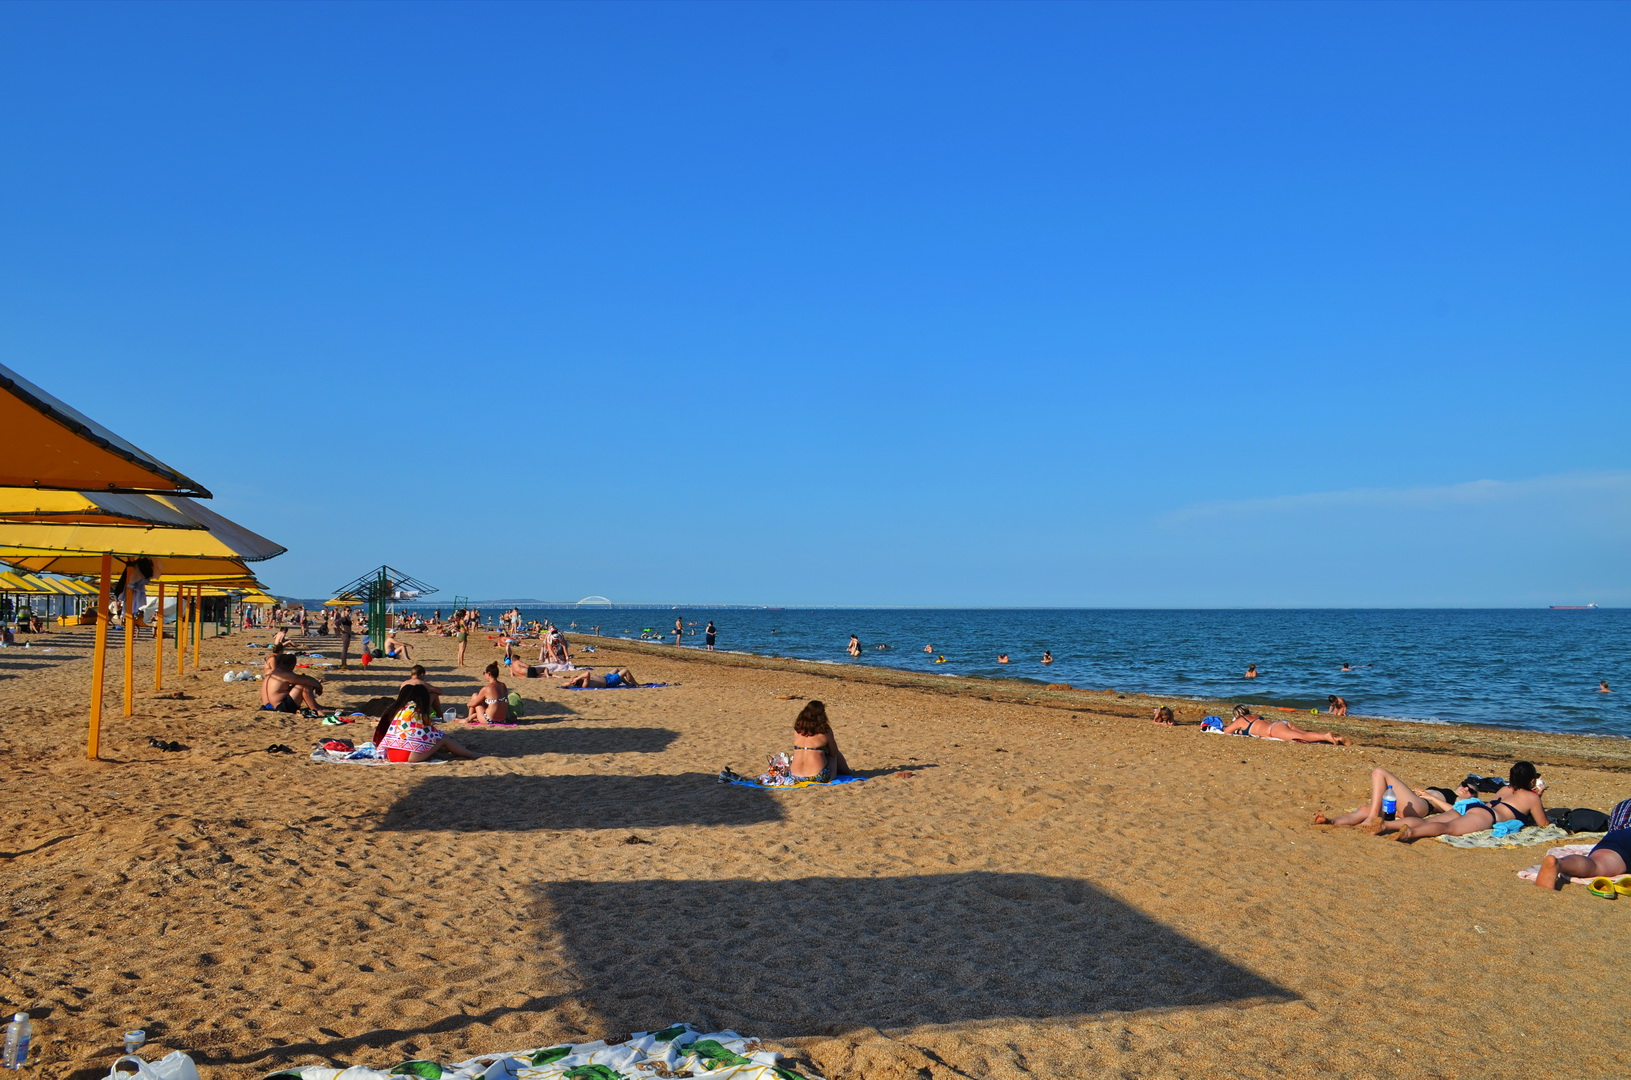 kerch city beach 31